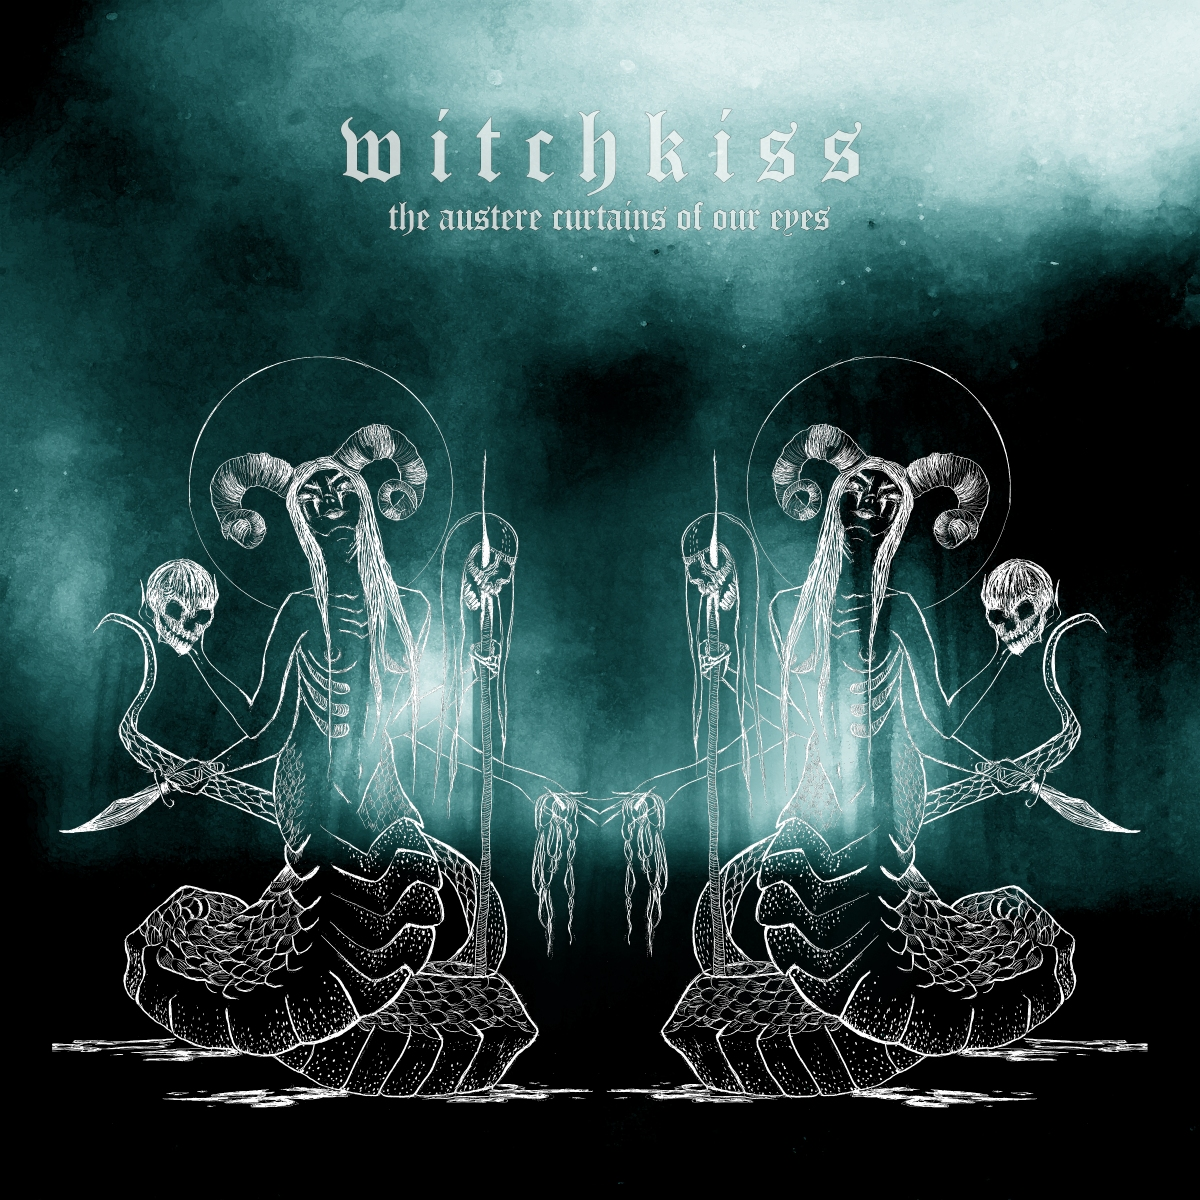 Witchkiss - The Austere Curtains of Our Eyes (Review)